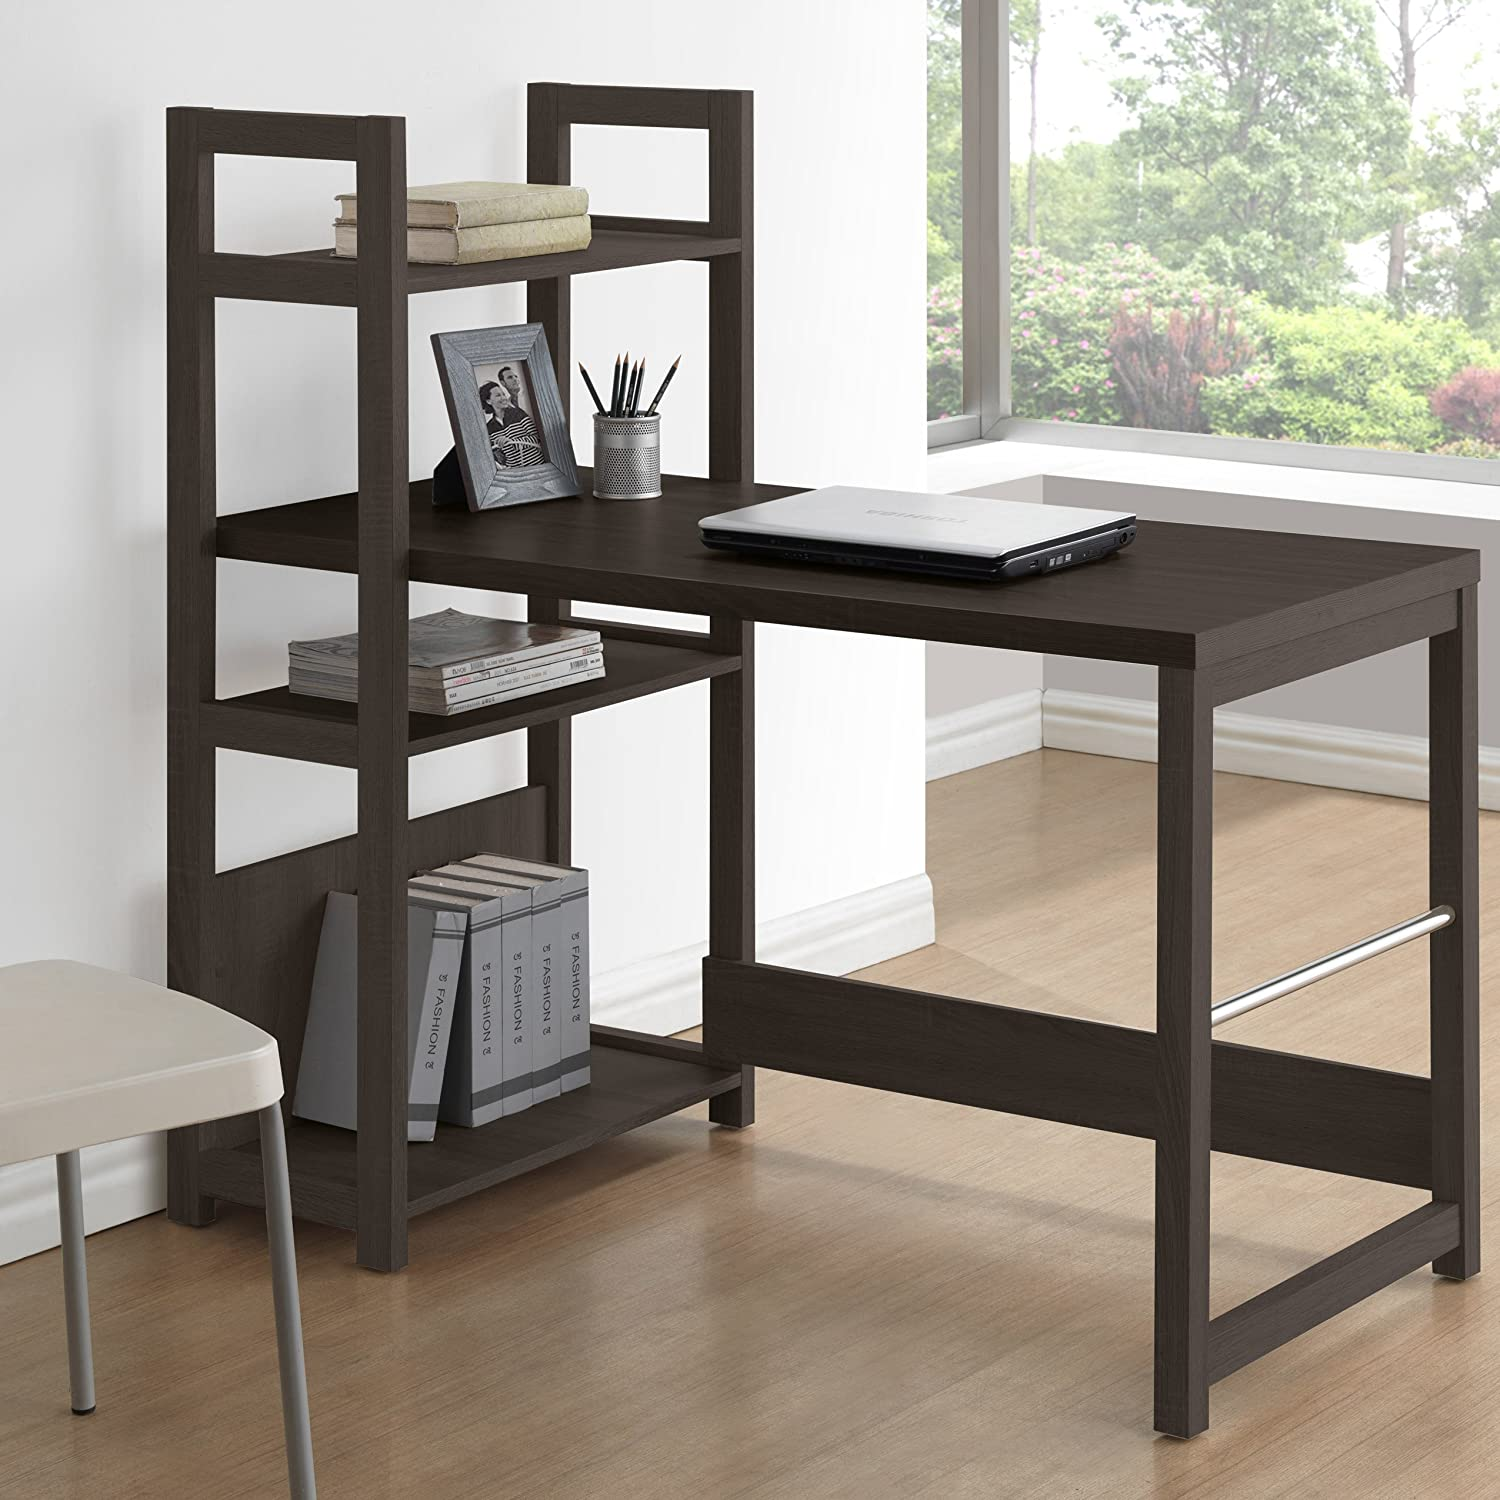 desks furniture width ikea workstation desk height home kallax decoration combo computer gallery brown black bookshelf